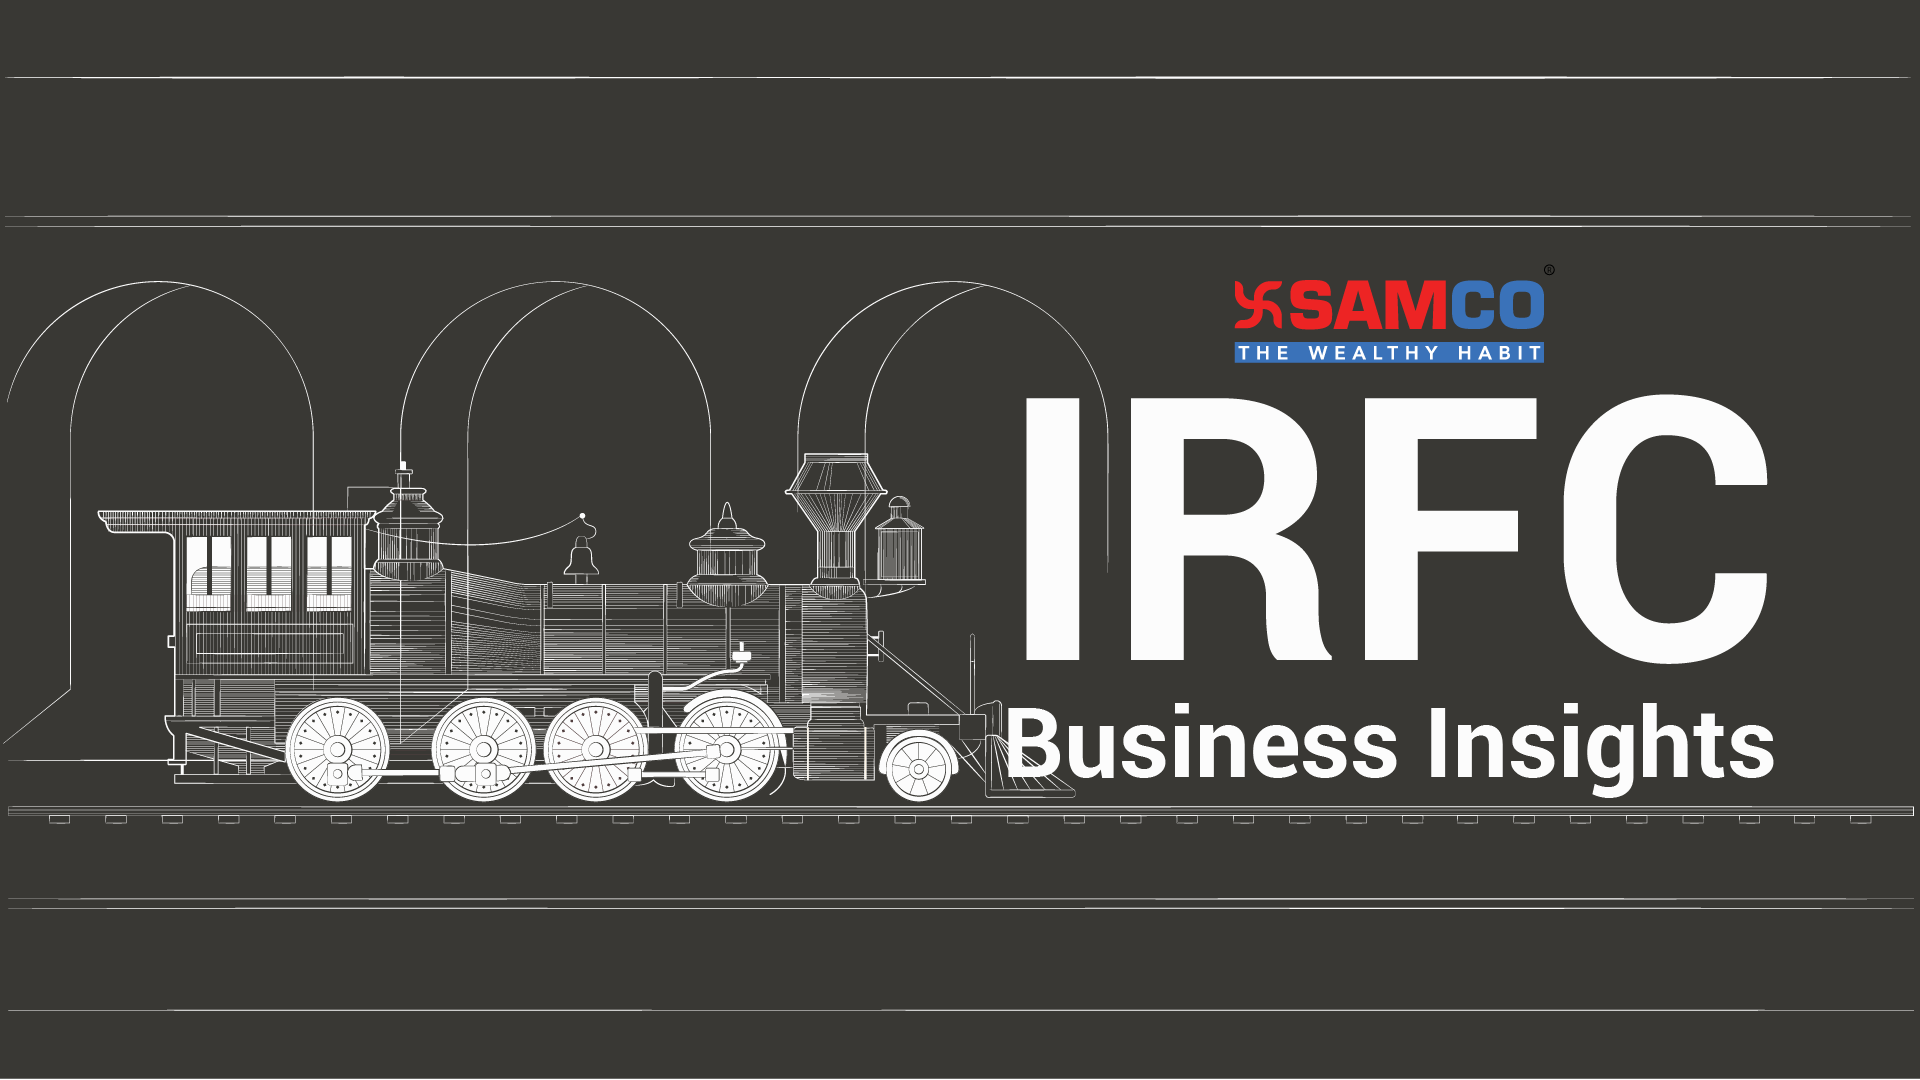 IRFC Business Insights